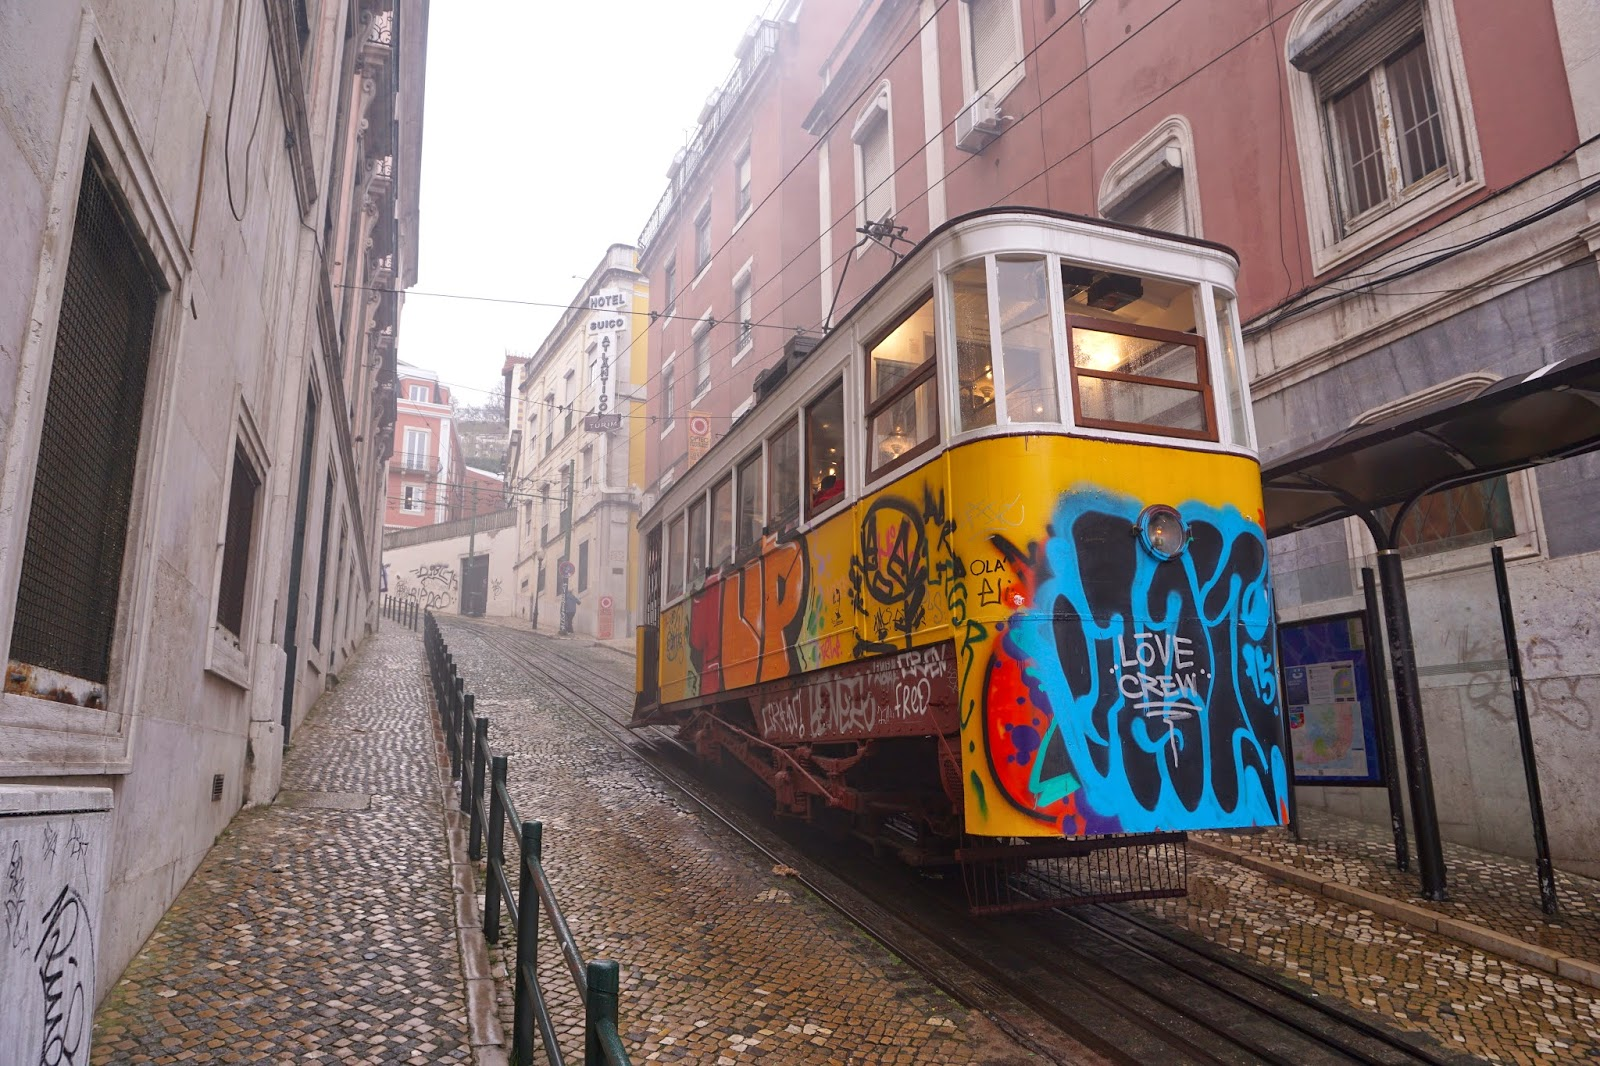 One of Lisbon's iconic steep uphill trams